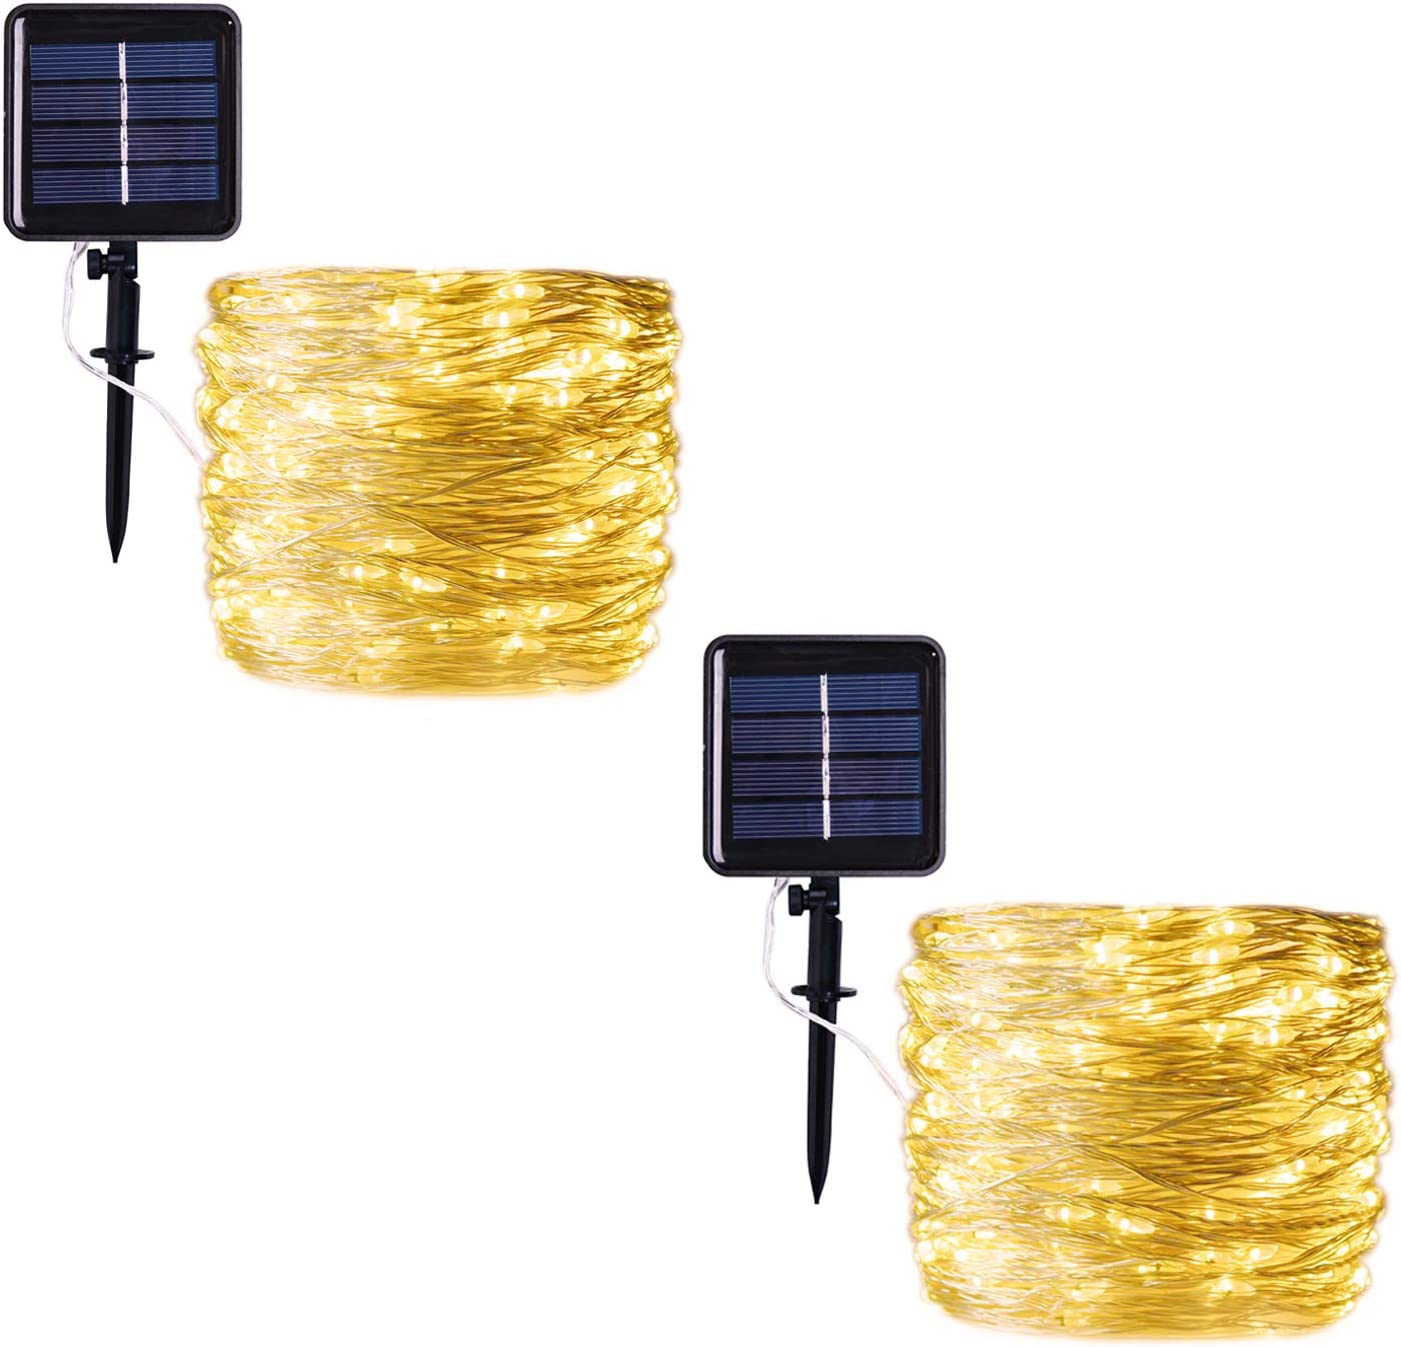 HONGM Solar String Lights Outdoor, 100 LED Waterproof Fairy String Decorative Copper Wire Lights for Wedding, Patio, Bedroom, Party, Christmas (2Pack) (Warm White)